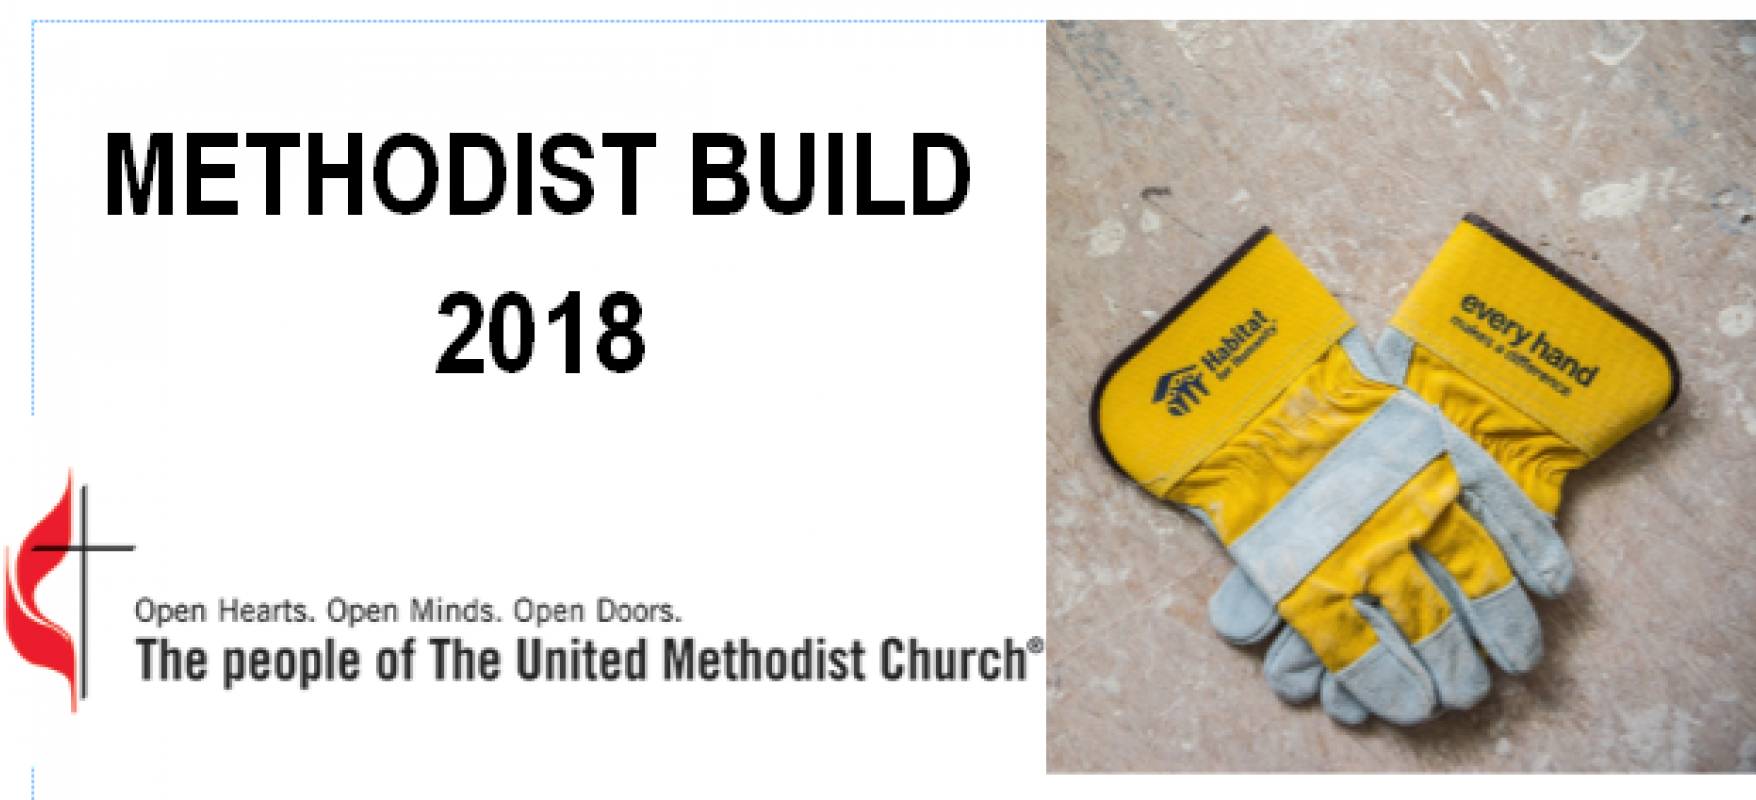 Methodist Build